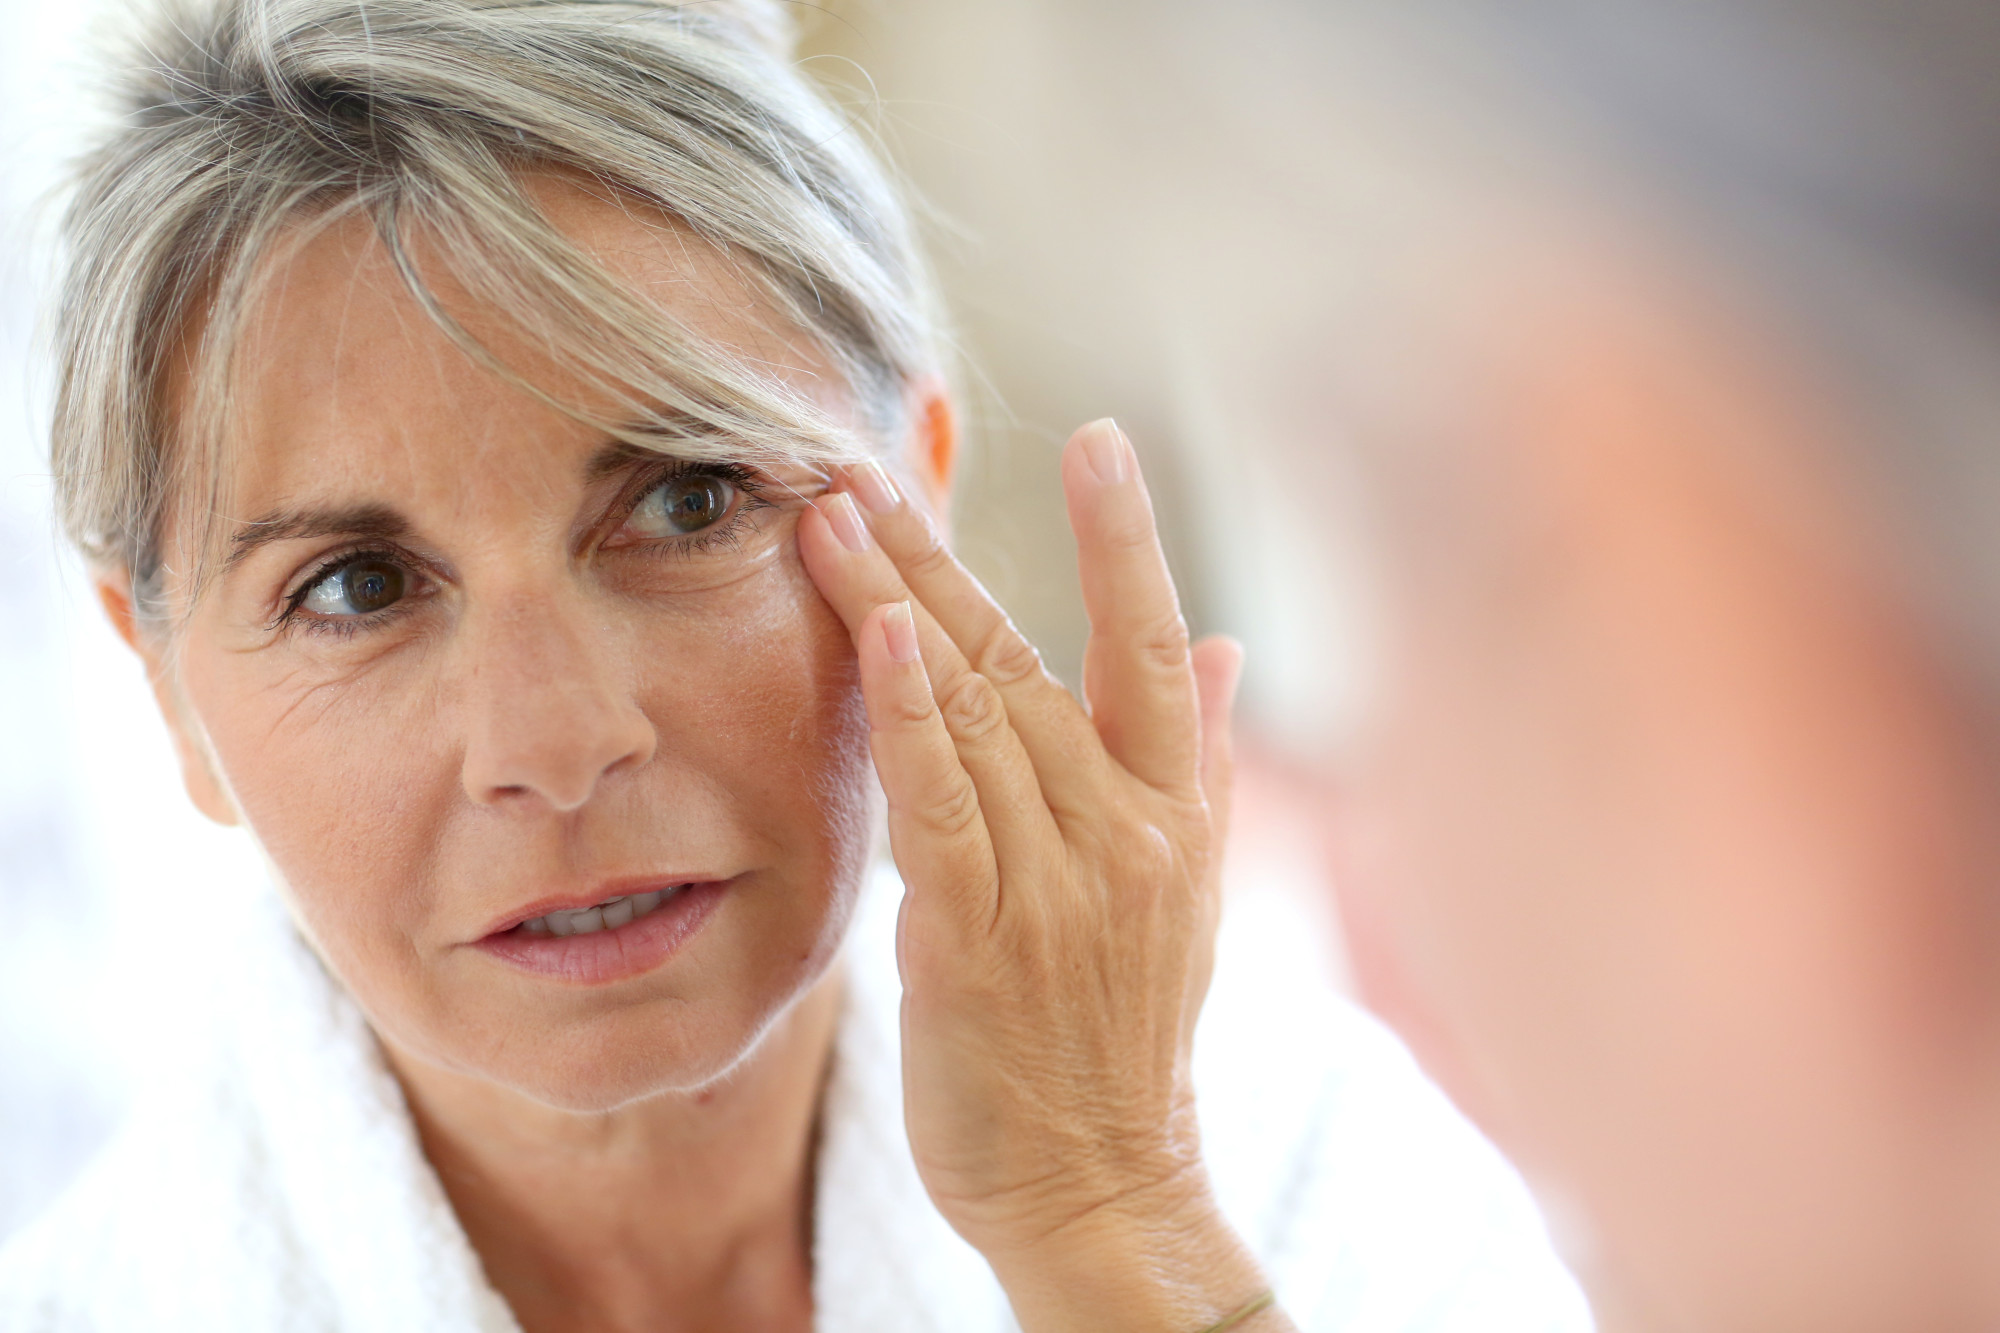 How to Get Rid of Wrinkles: The Top Methods Explained